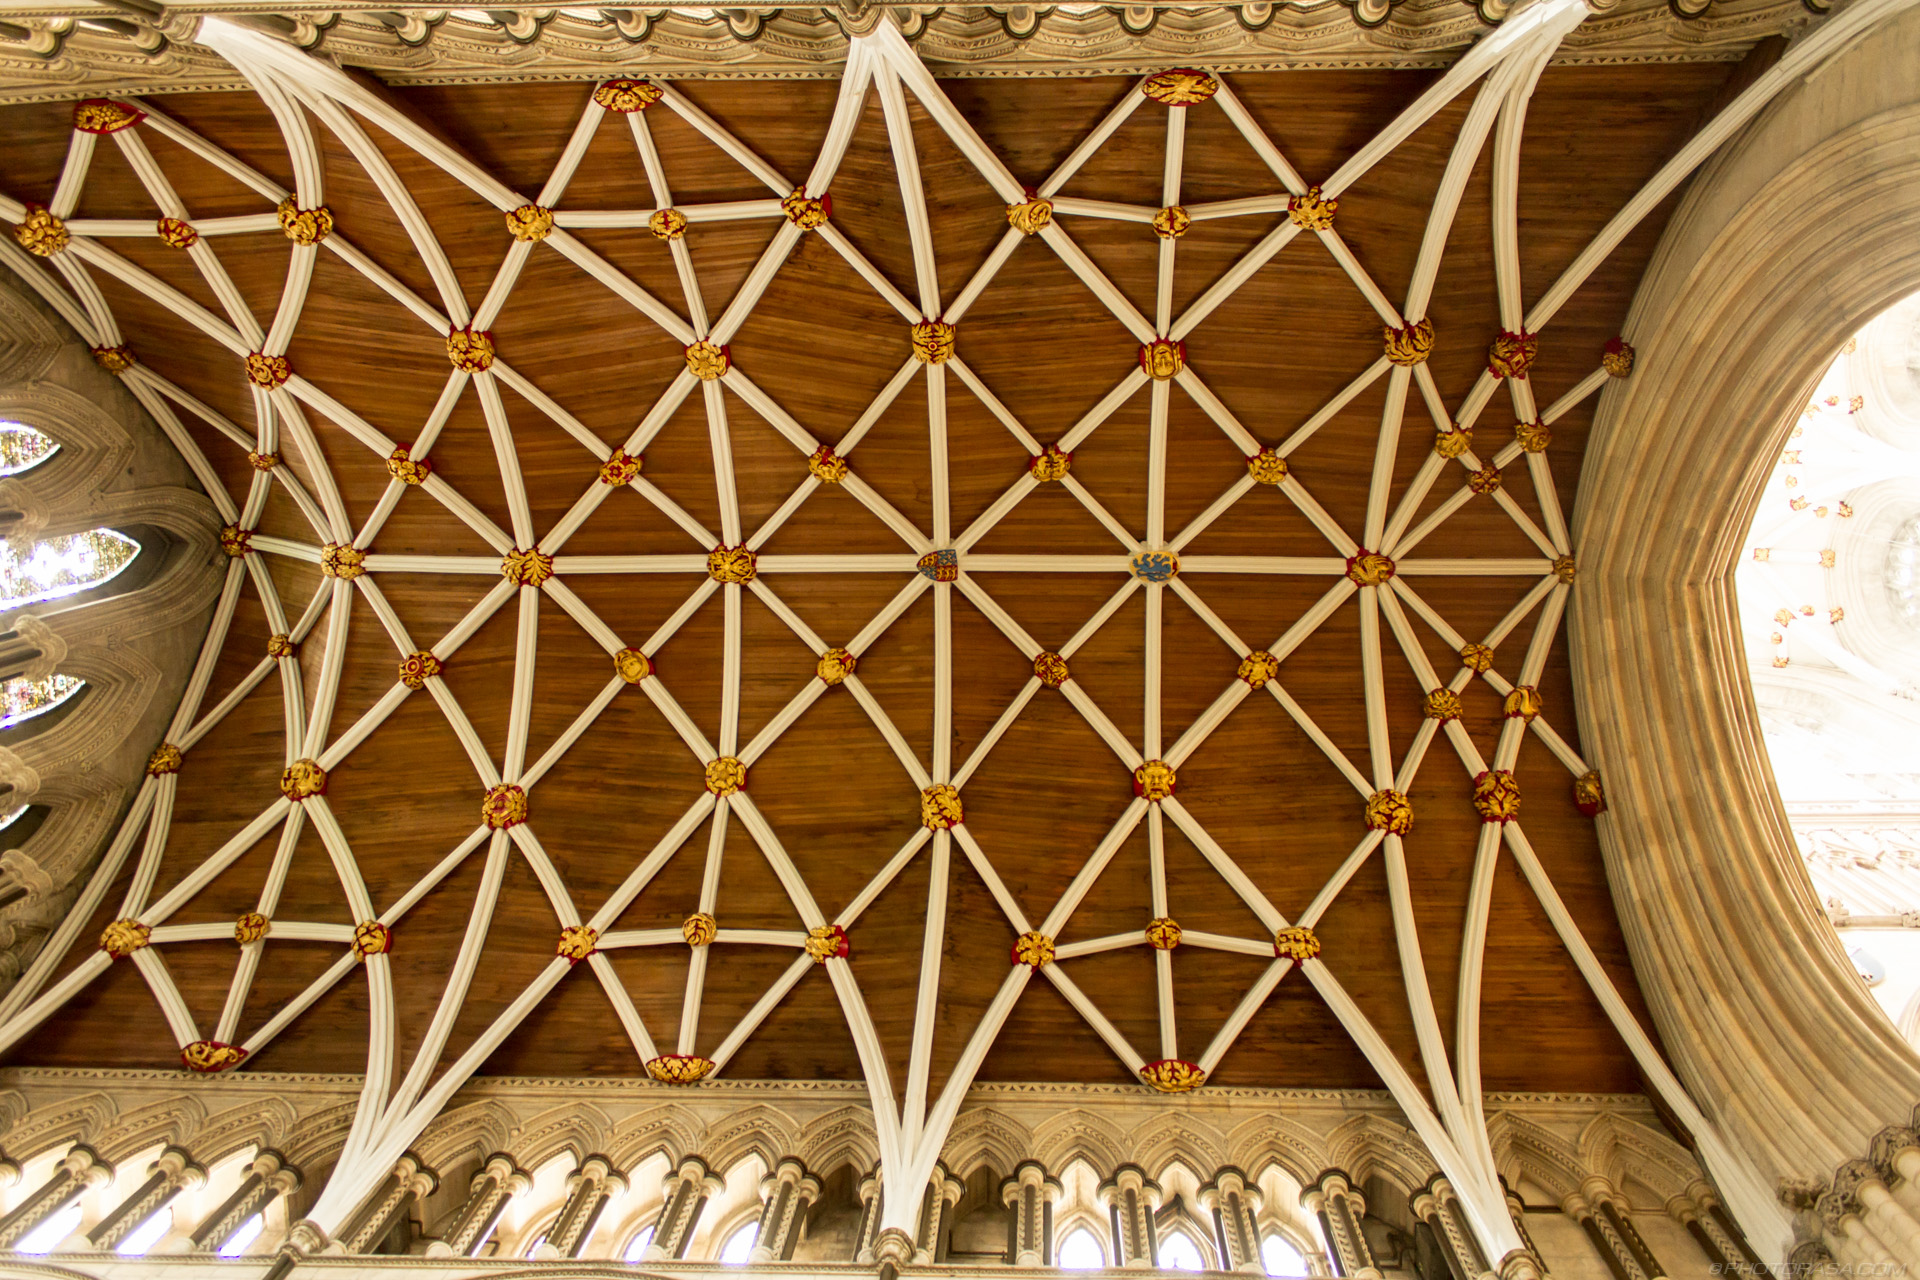 https://photorasa.com/yorkminster-cathedral/vaulted-wooden-cathedral-ceiling/